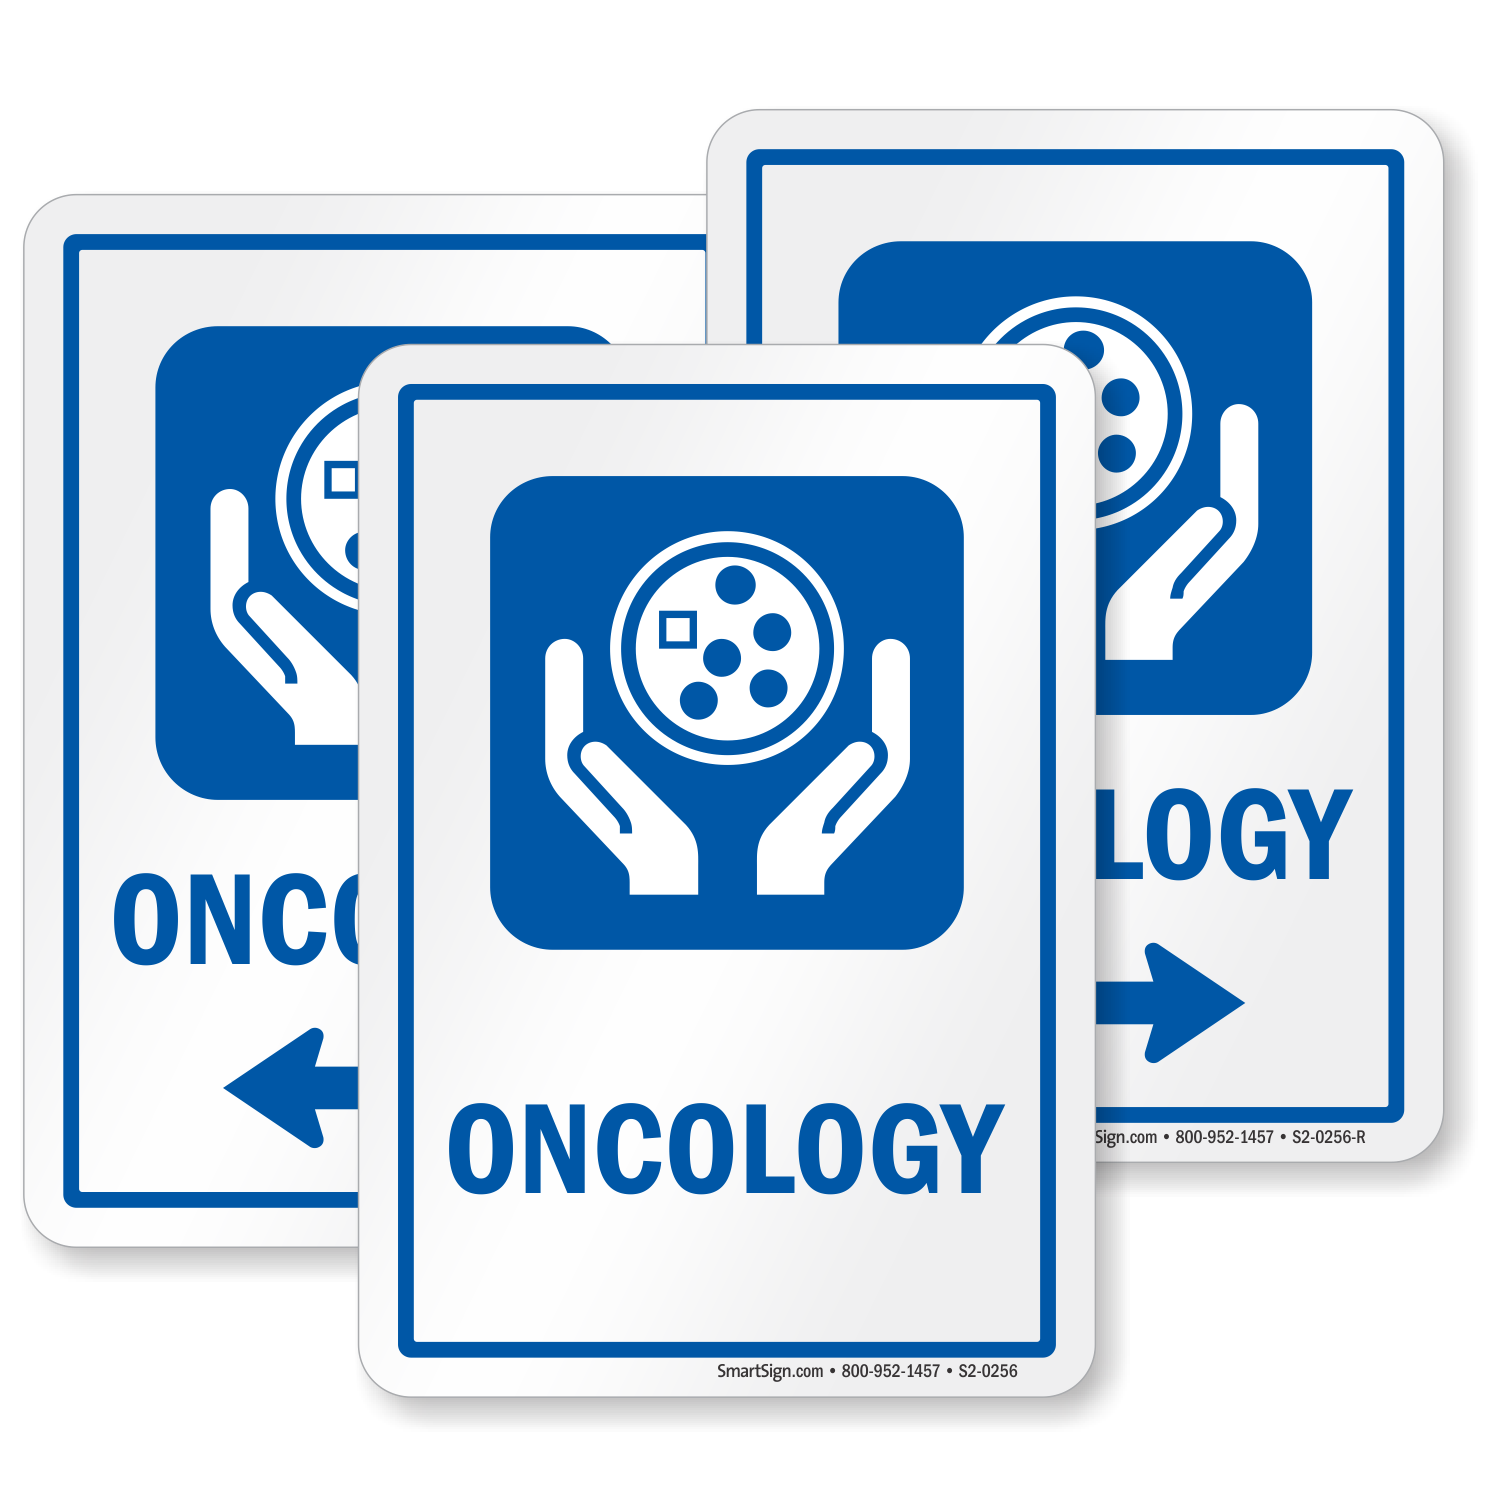 Oncology Signs Oncology Door Signs